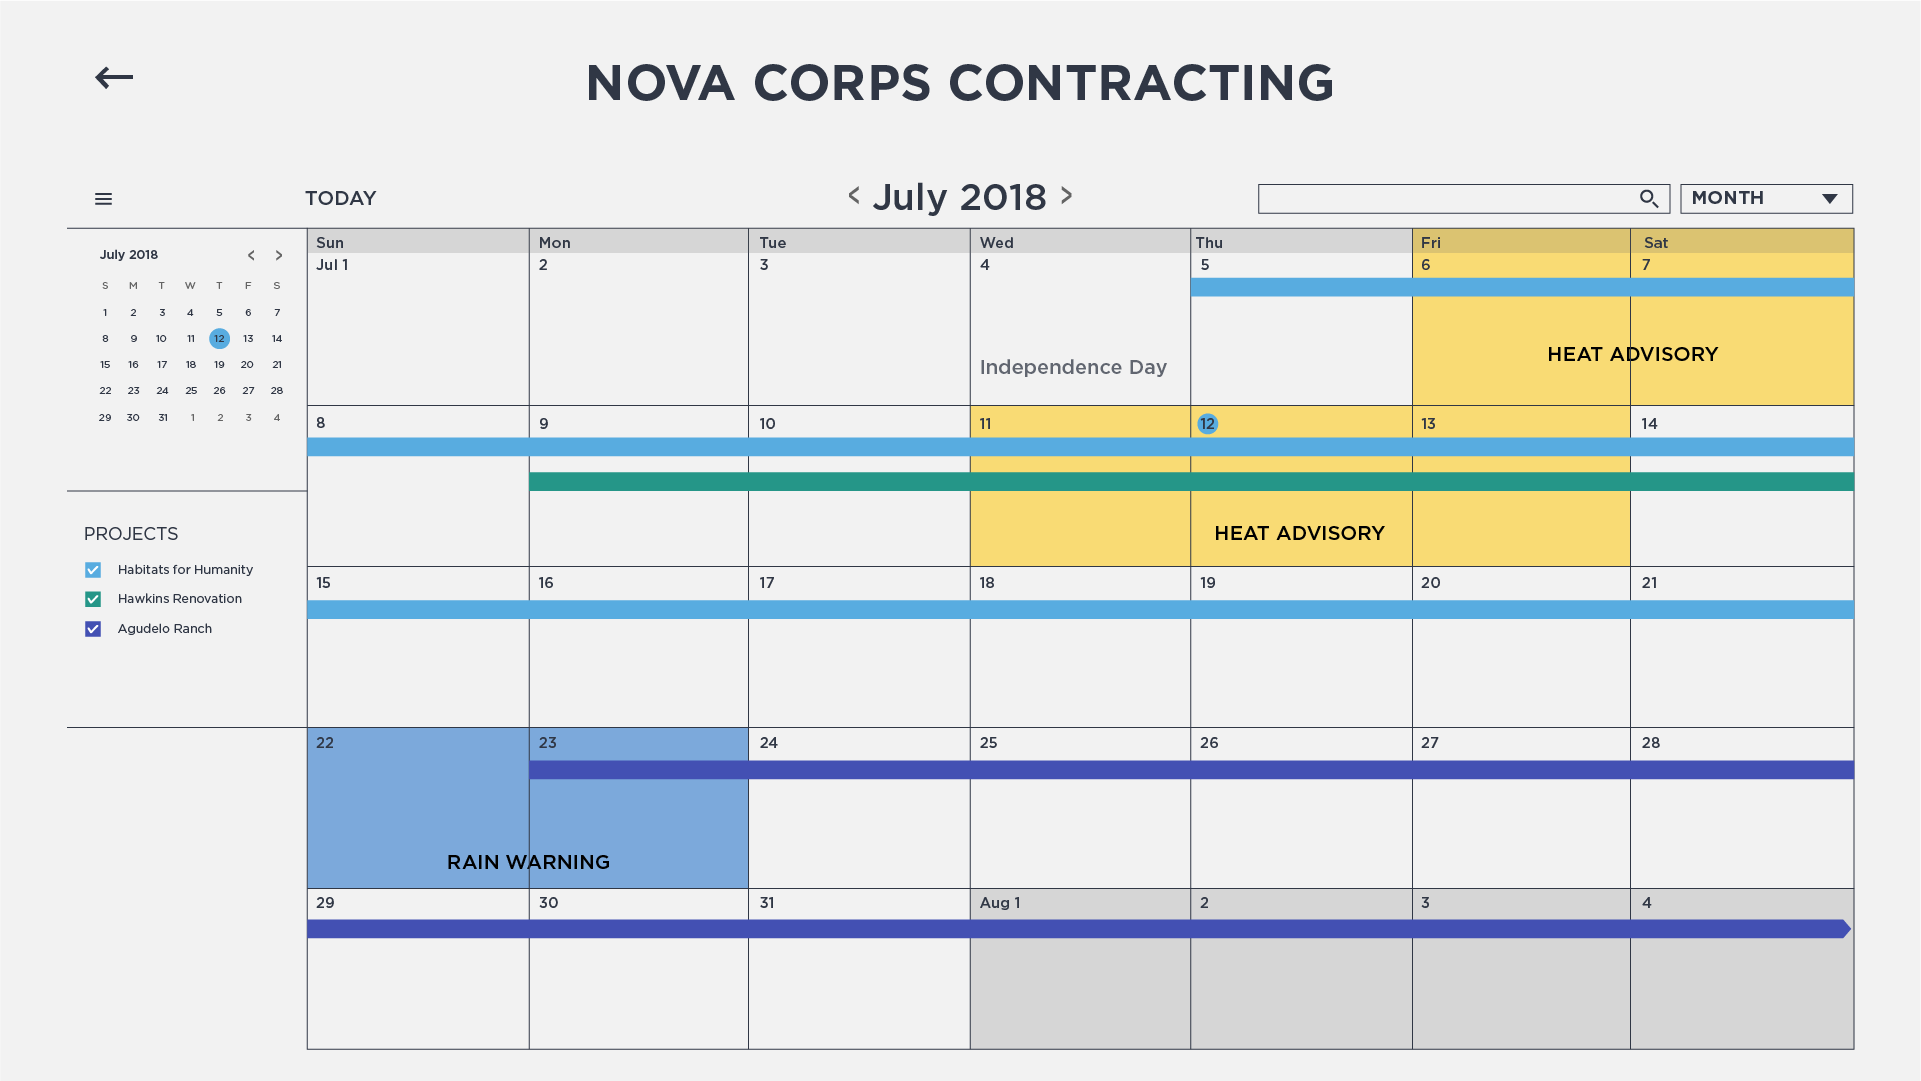 Monthly - A general overview of multiple projects across a long timeline. Holidays and weather warnings are displayed across all projects, and individual schedules are accounted for when viewing specific projects.